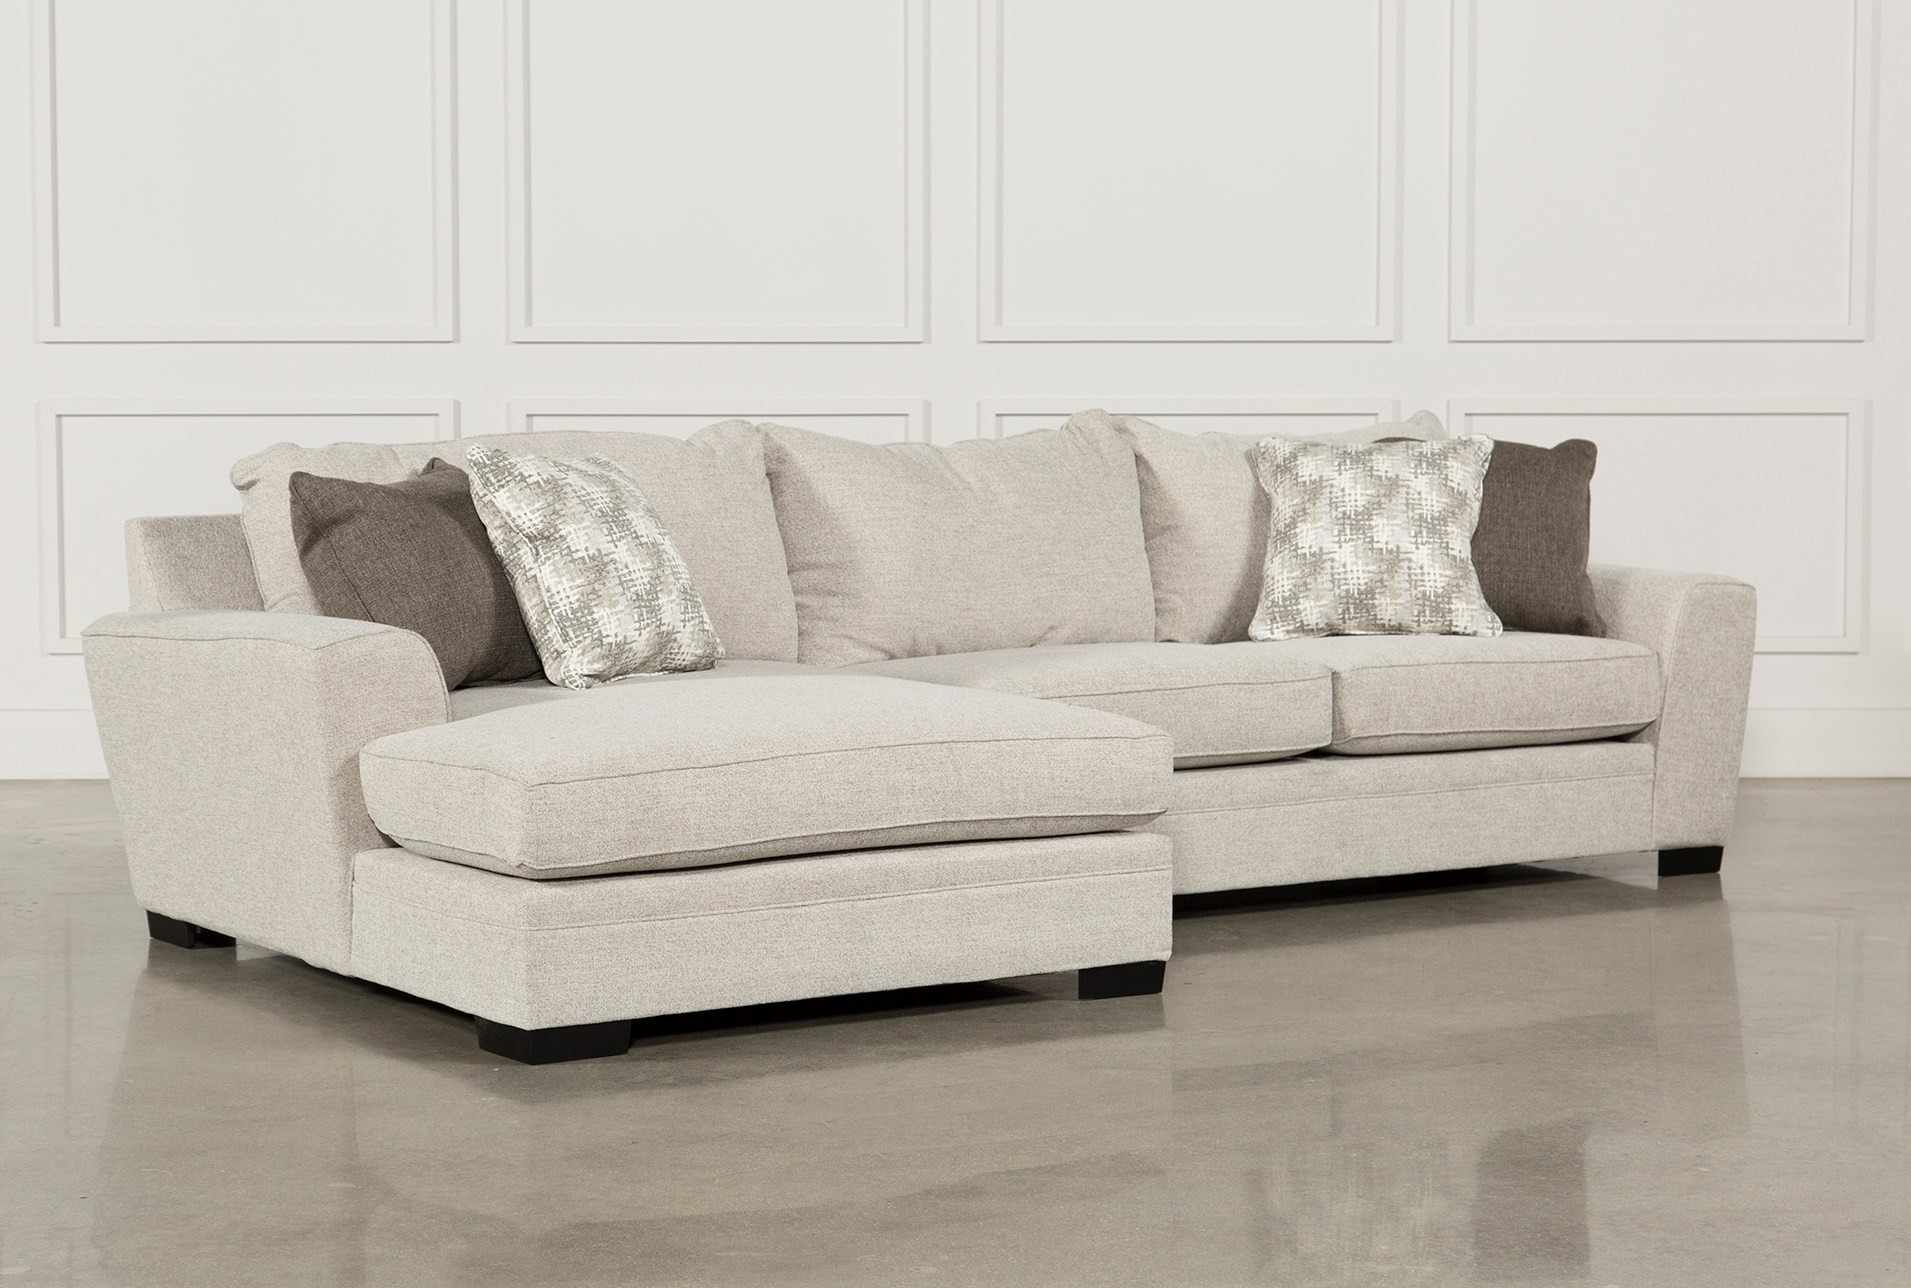 Living Spaces Sectional Couches Josephine 2 Piece W Raf Sofa 222882 Intended For Josephine 2 Piece Sectionals With Laf Sofa (Image 19 of 25)